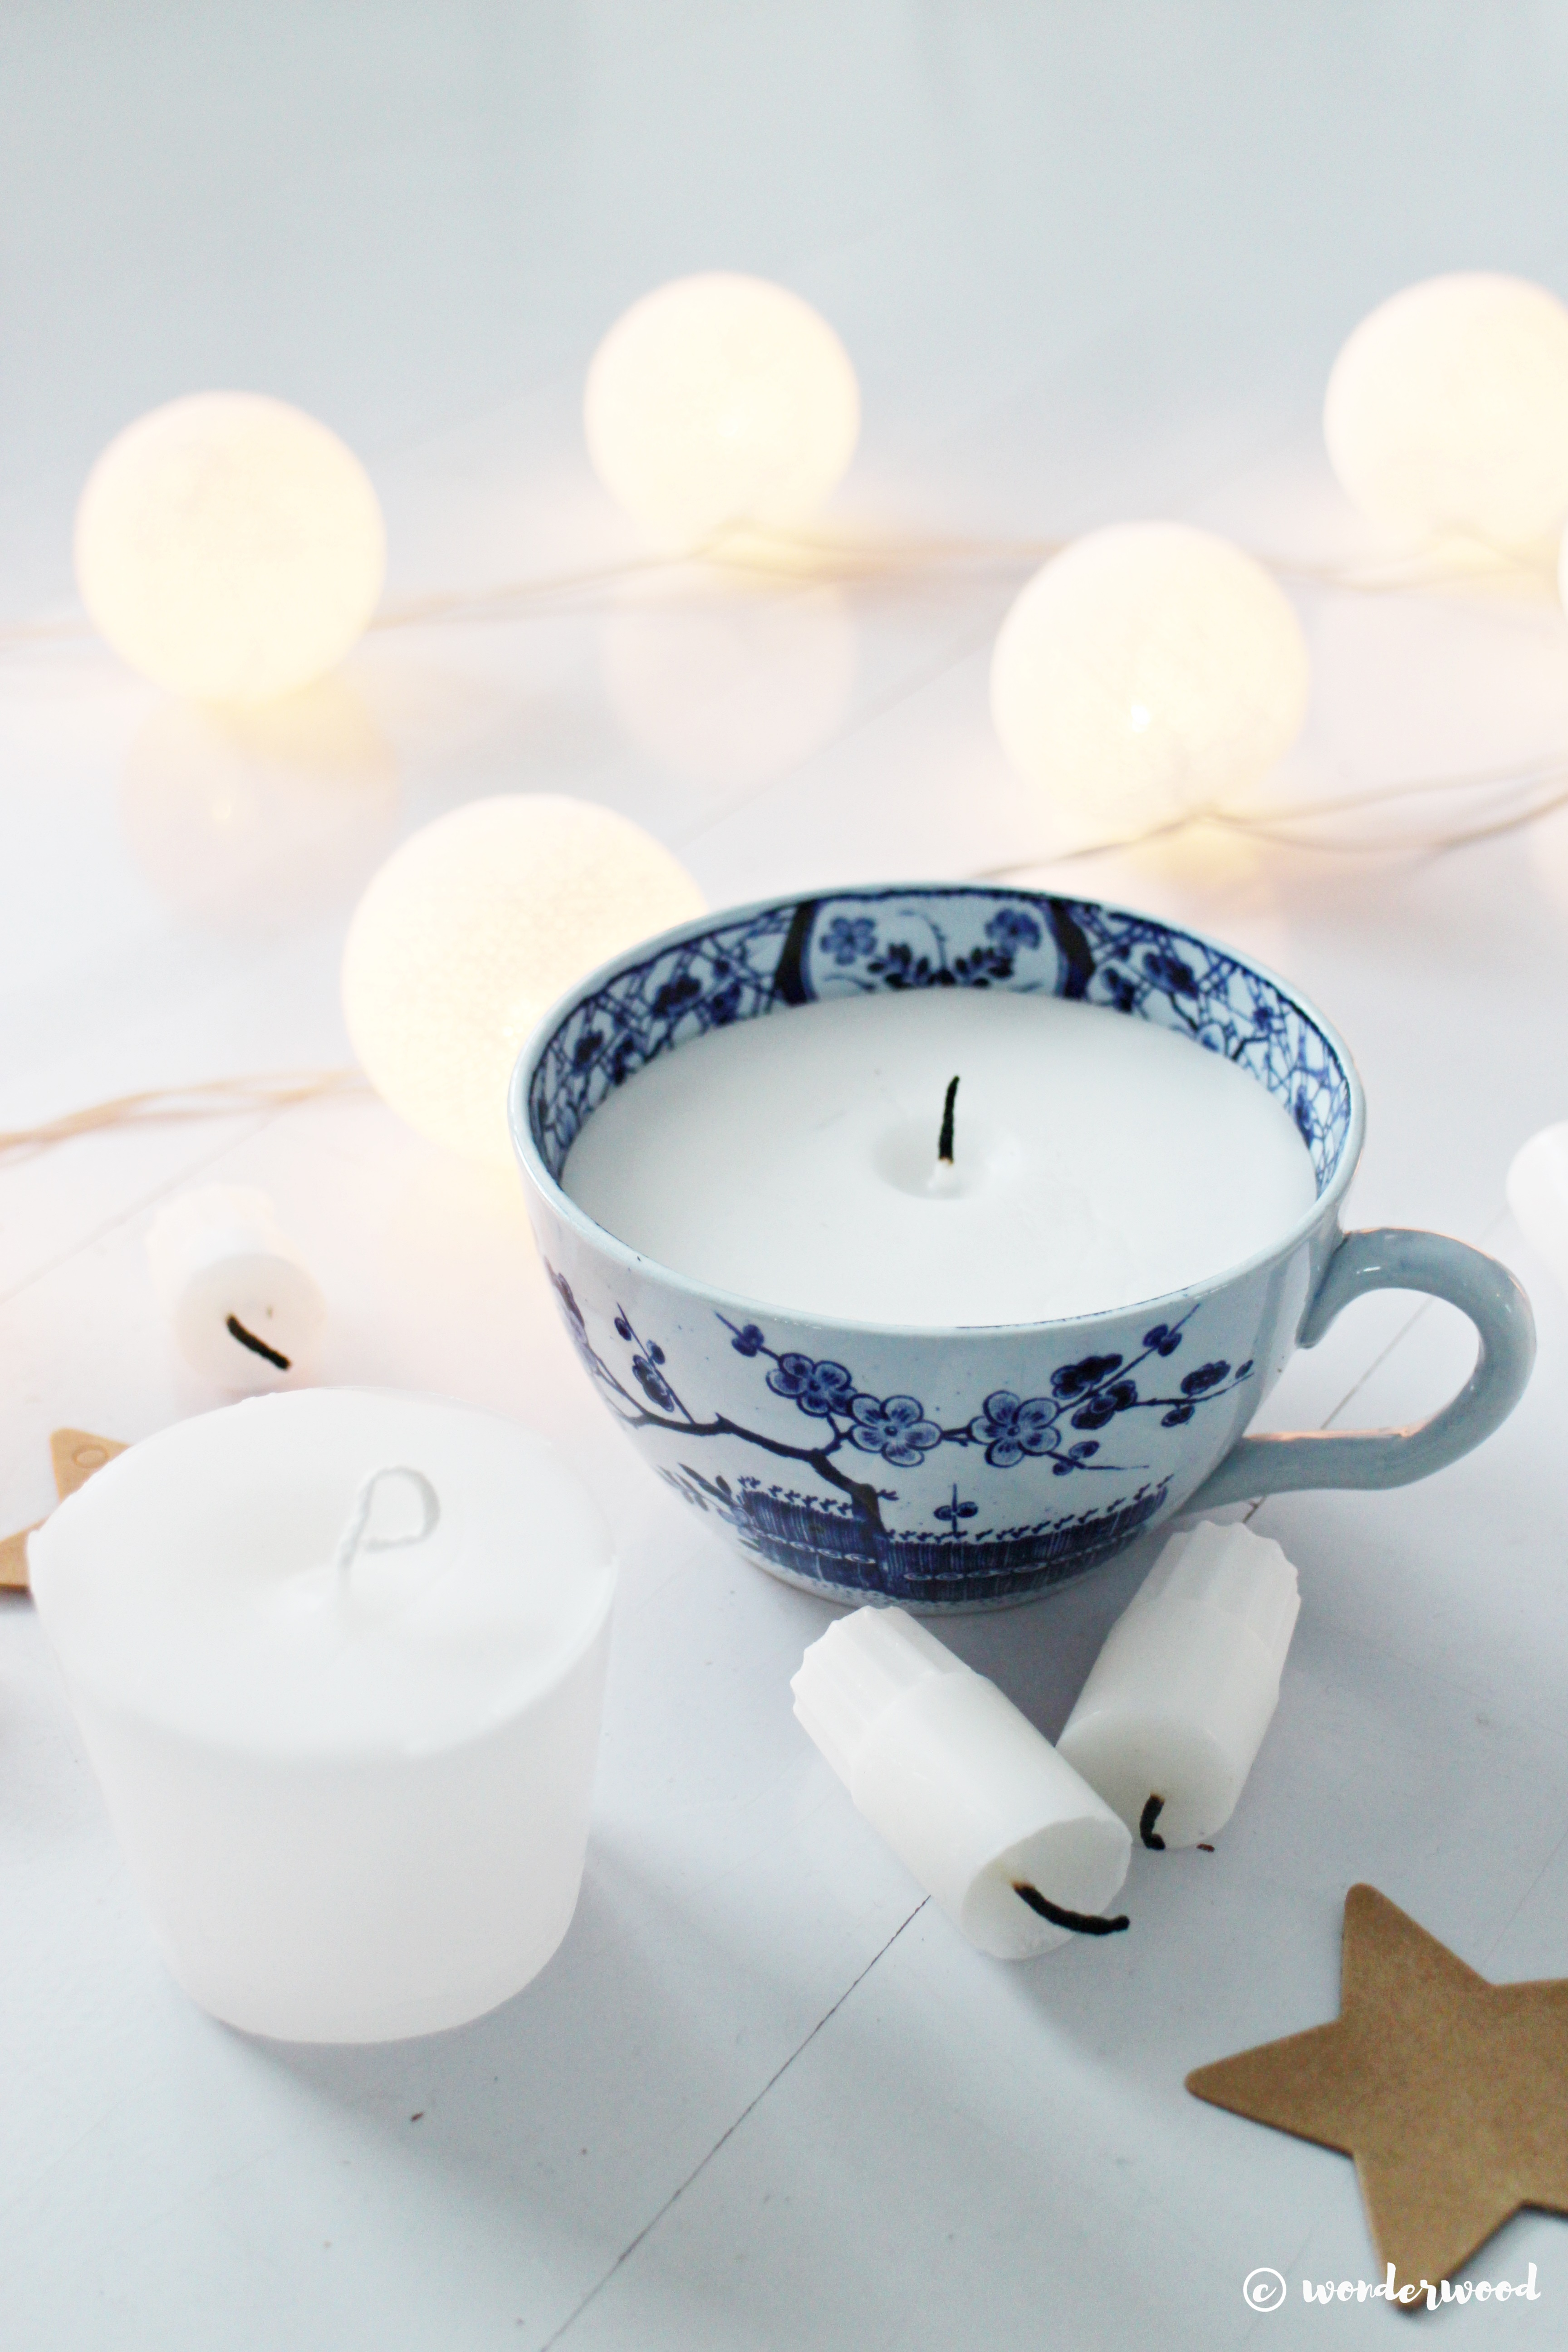 Tips til hjemmelagde julegaver 6: diy stearinlys // Homemade Christmas Gift Ideas 6: diy candle in a cup